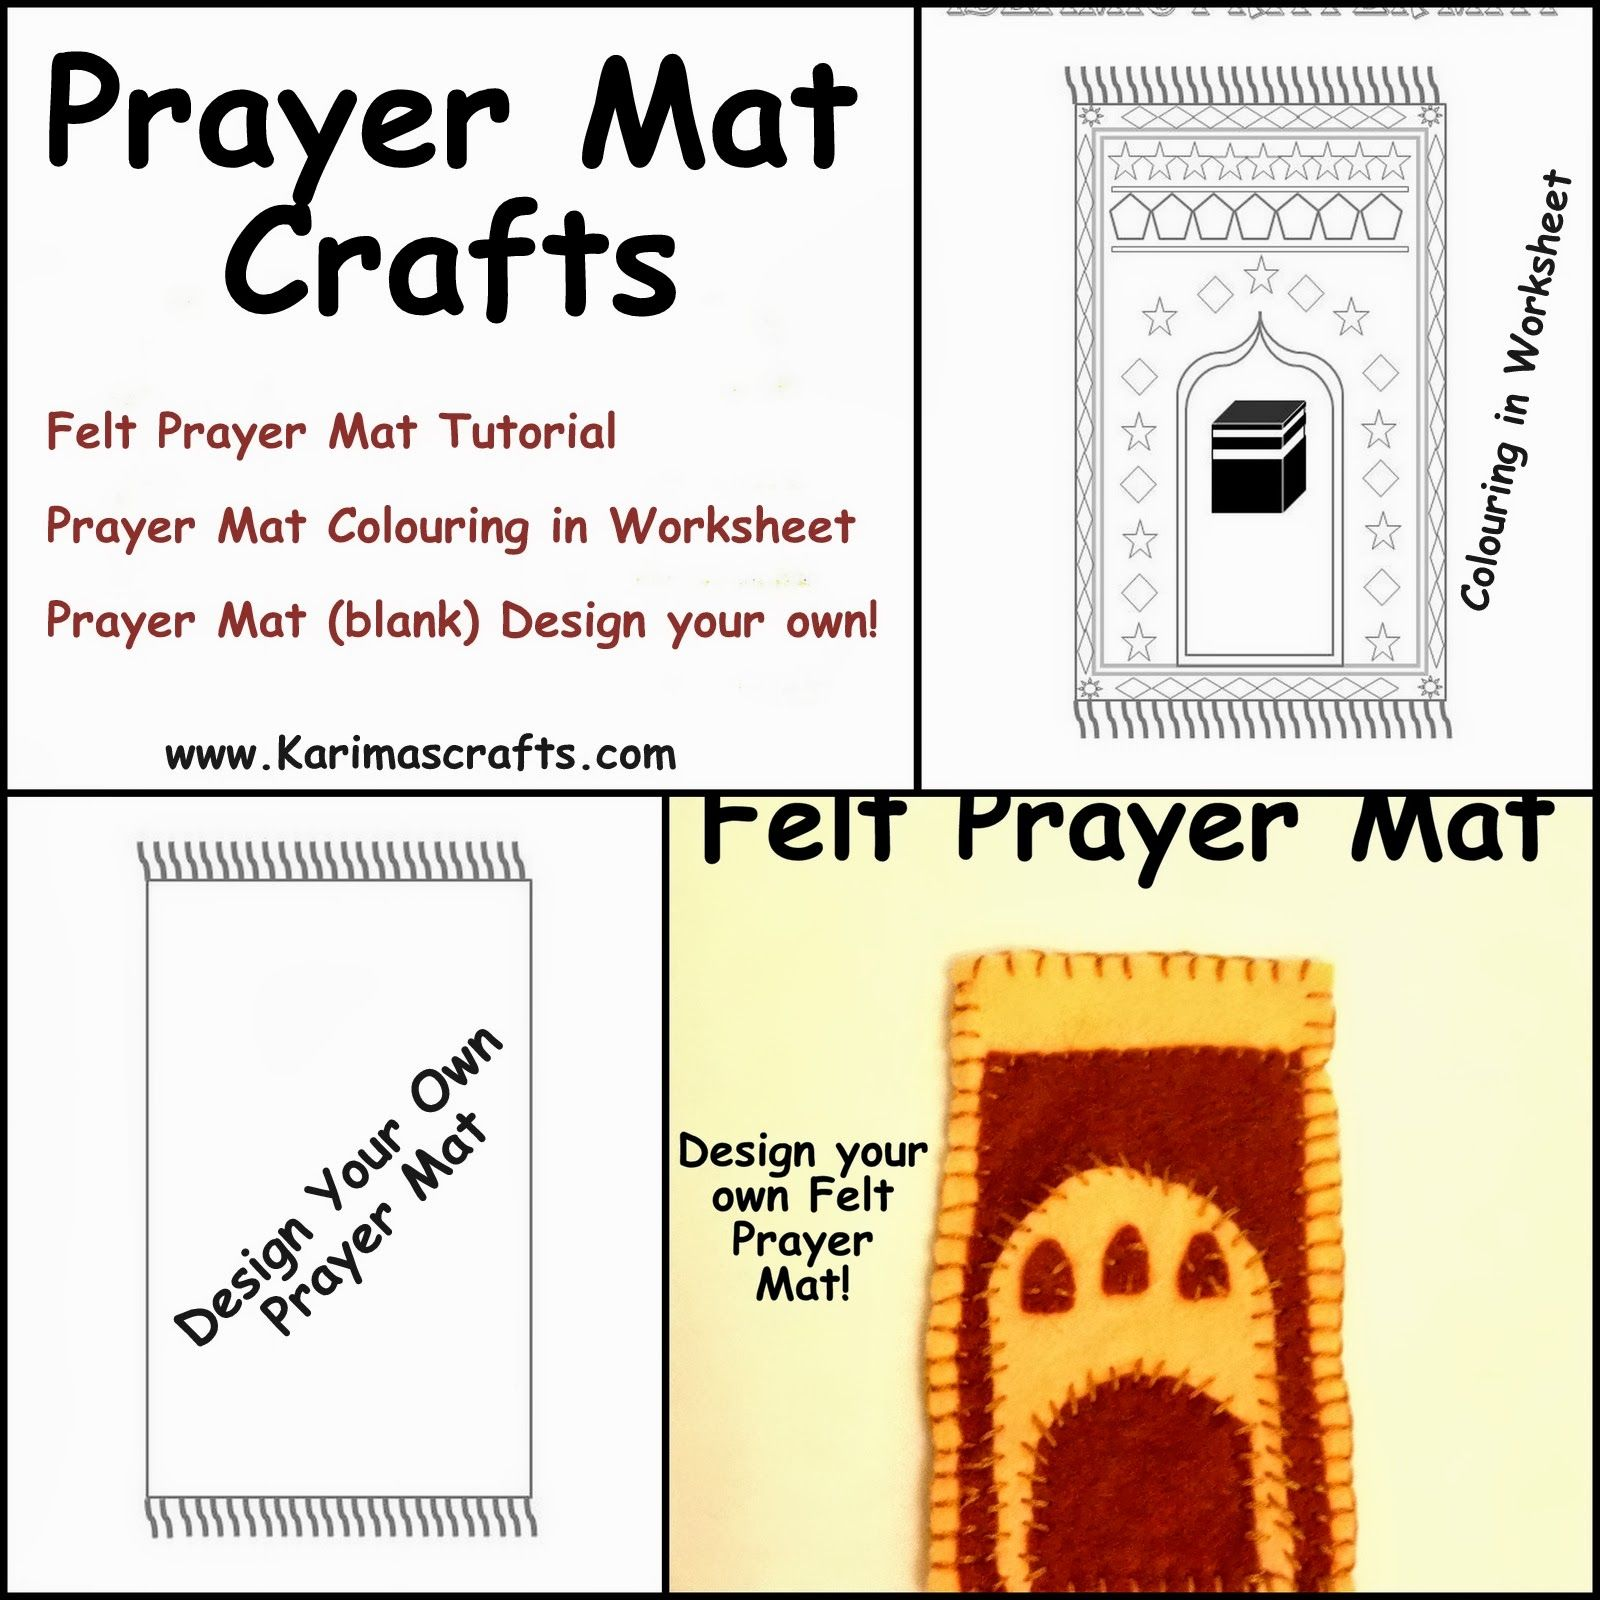 Prayer Mat Crafts Ramadan Islamic Muslim Karimas Crafts